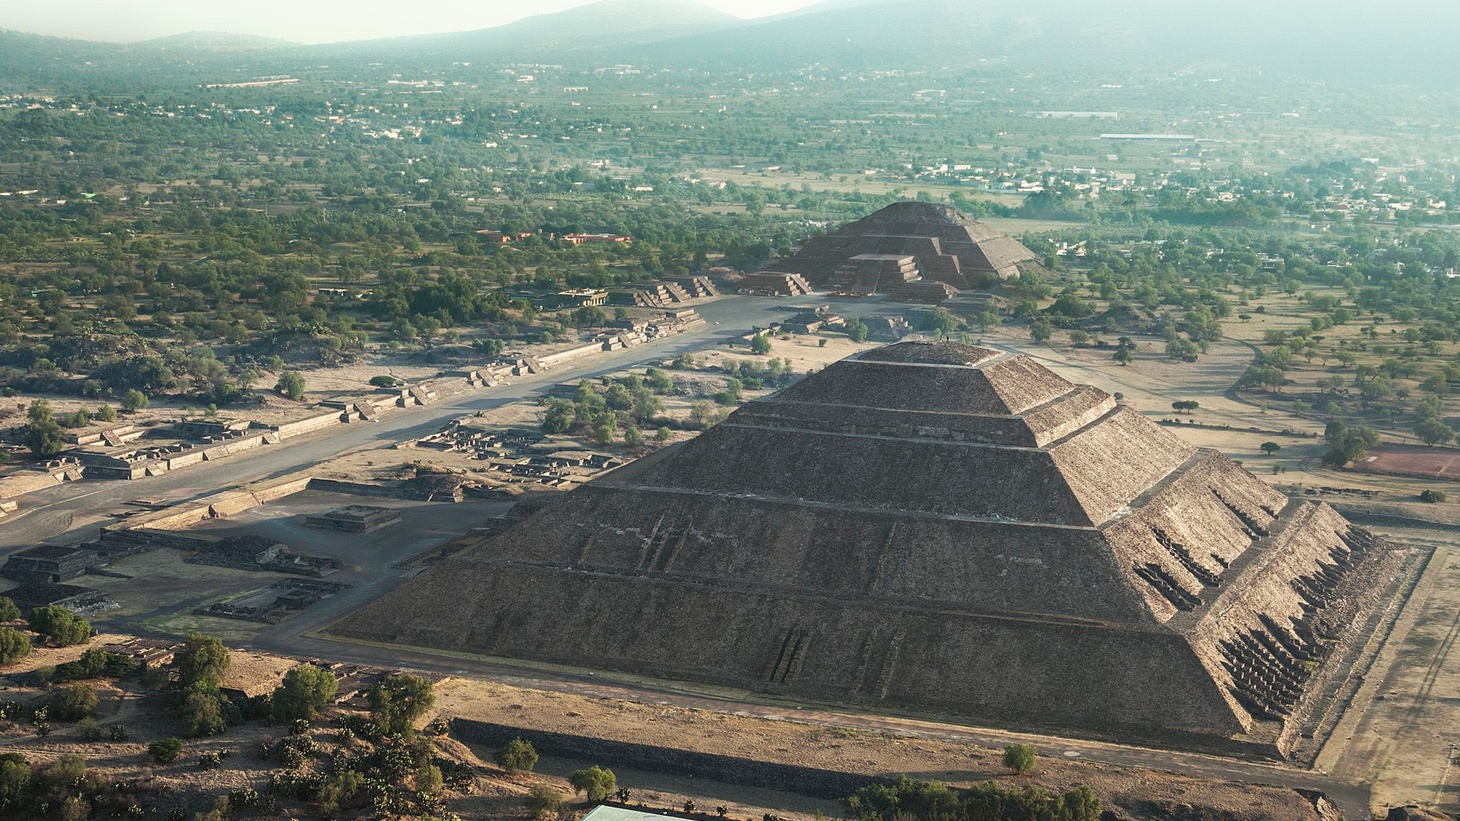 Hunter Drohojowska-Philp says that City and Cosmos offers a sense of both at the ancient pyramids of Mexico.